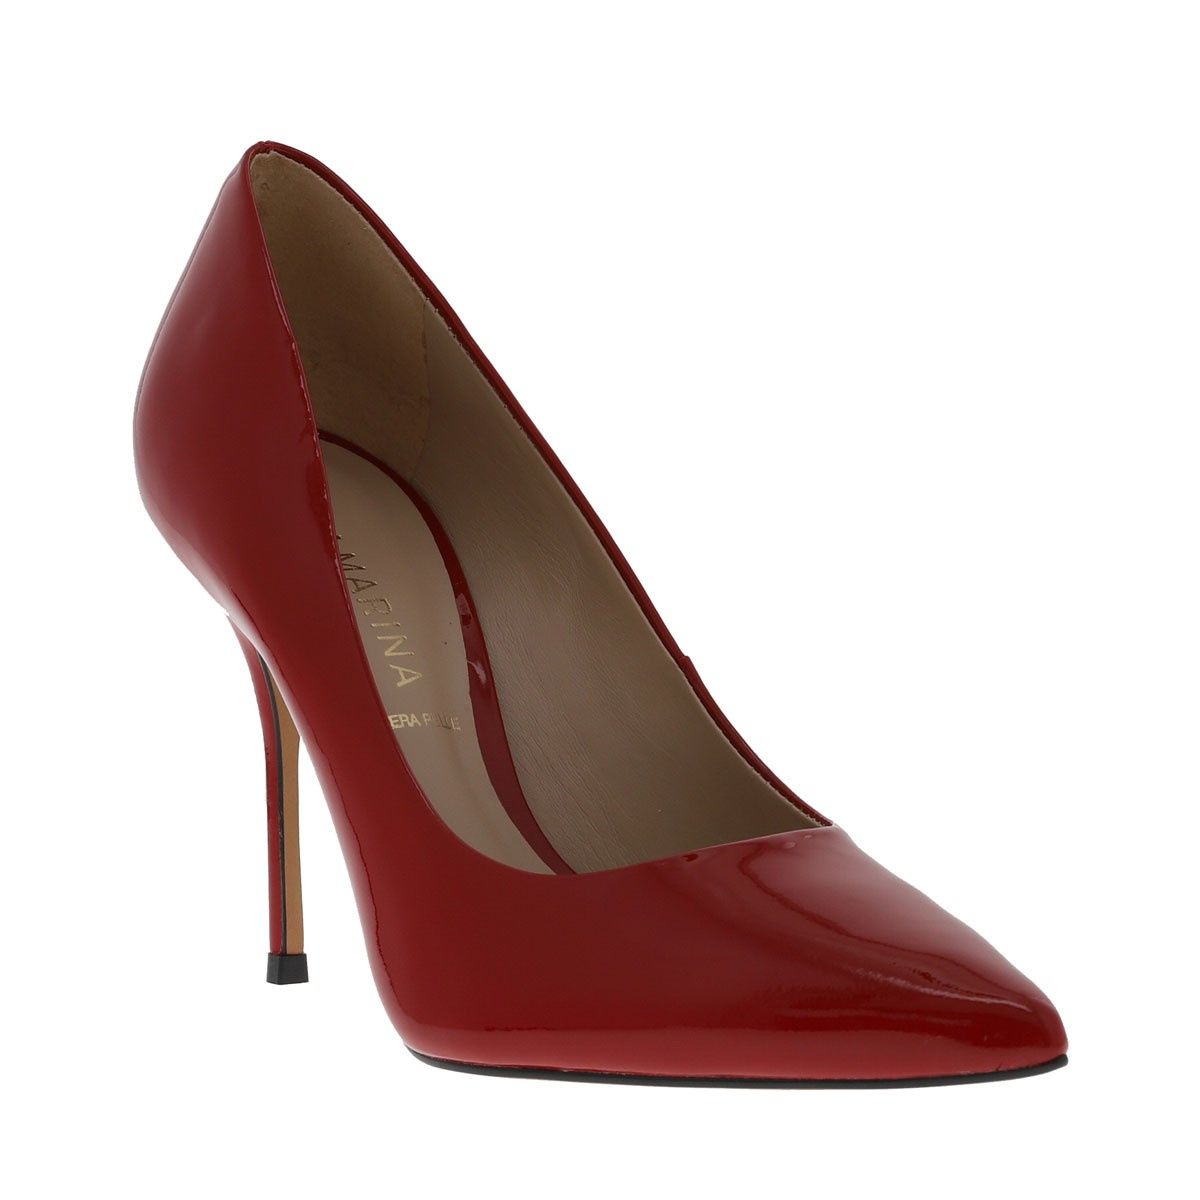 huge selection of new style official SAN MARINA Escarpins Galicia femme rouge